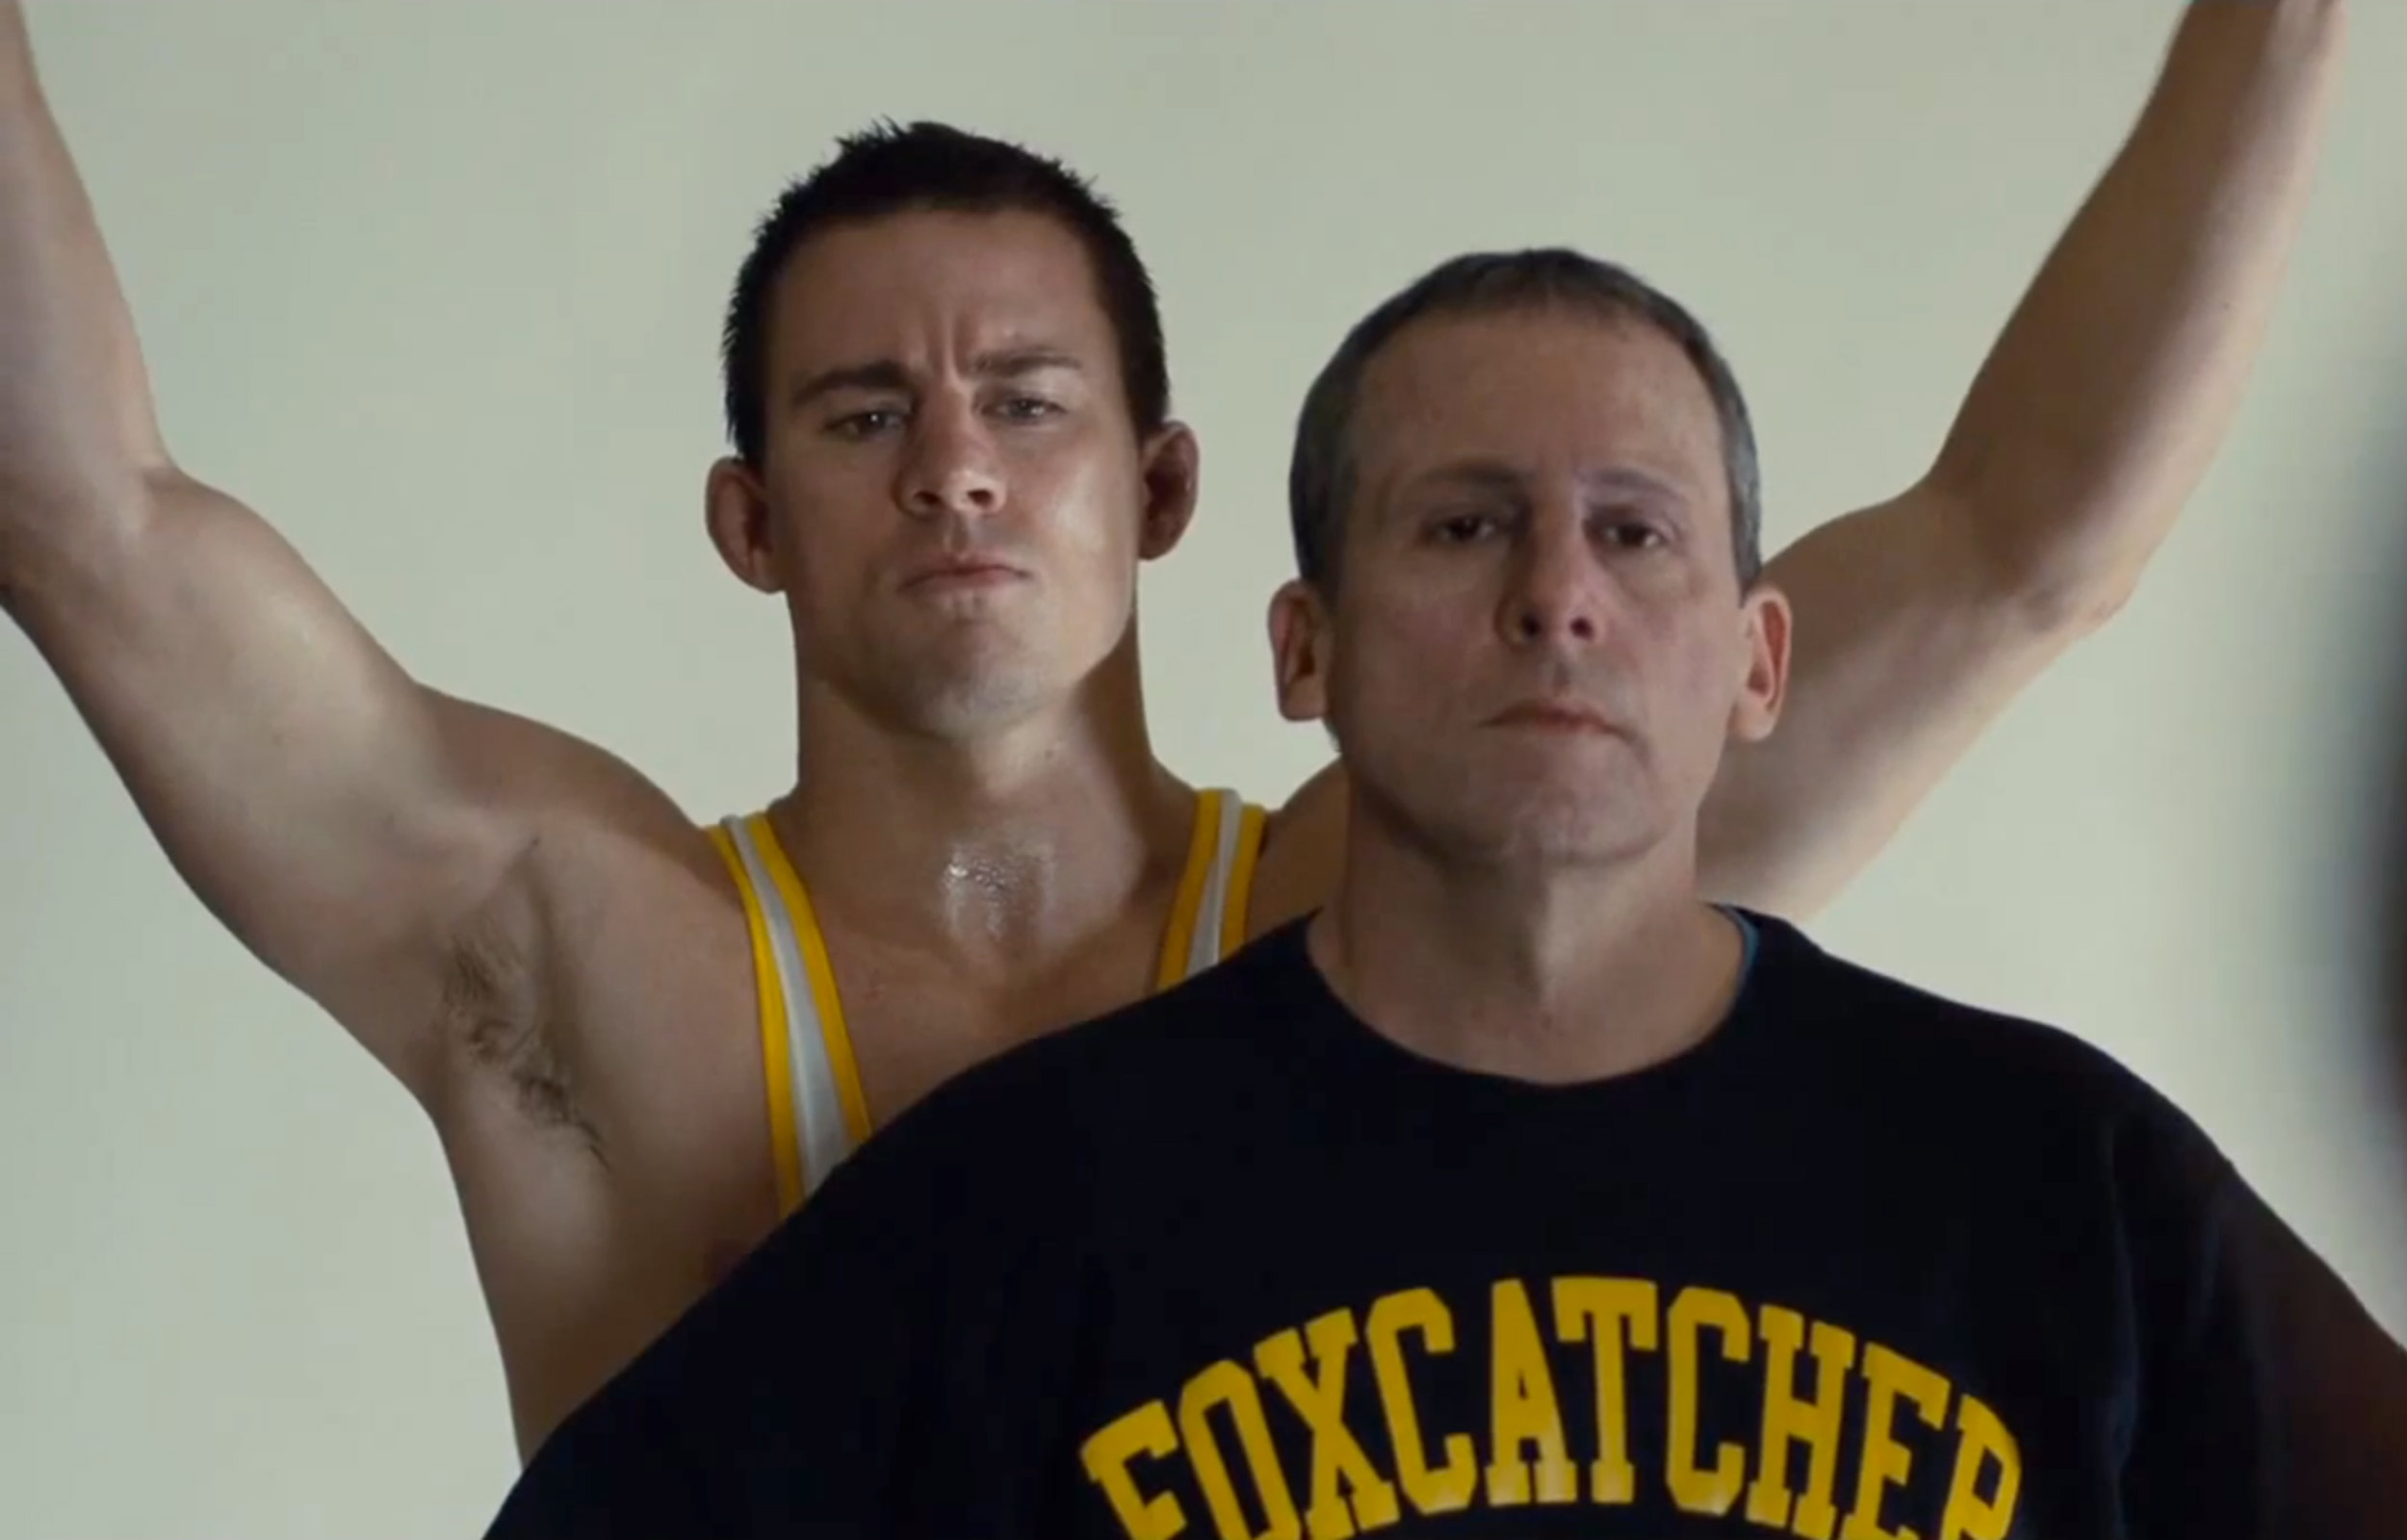 new-york-film-festival-2014-foxcatcher-movie-review-476e53cb-eb5f-40b0-8dbd-5ba46b3001bc